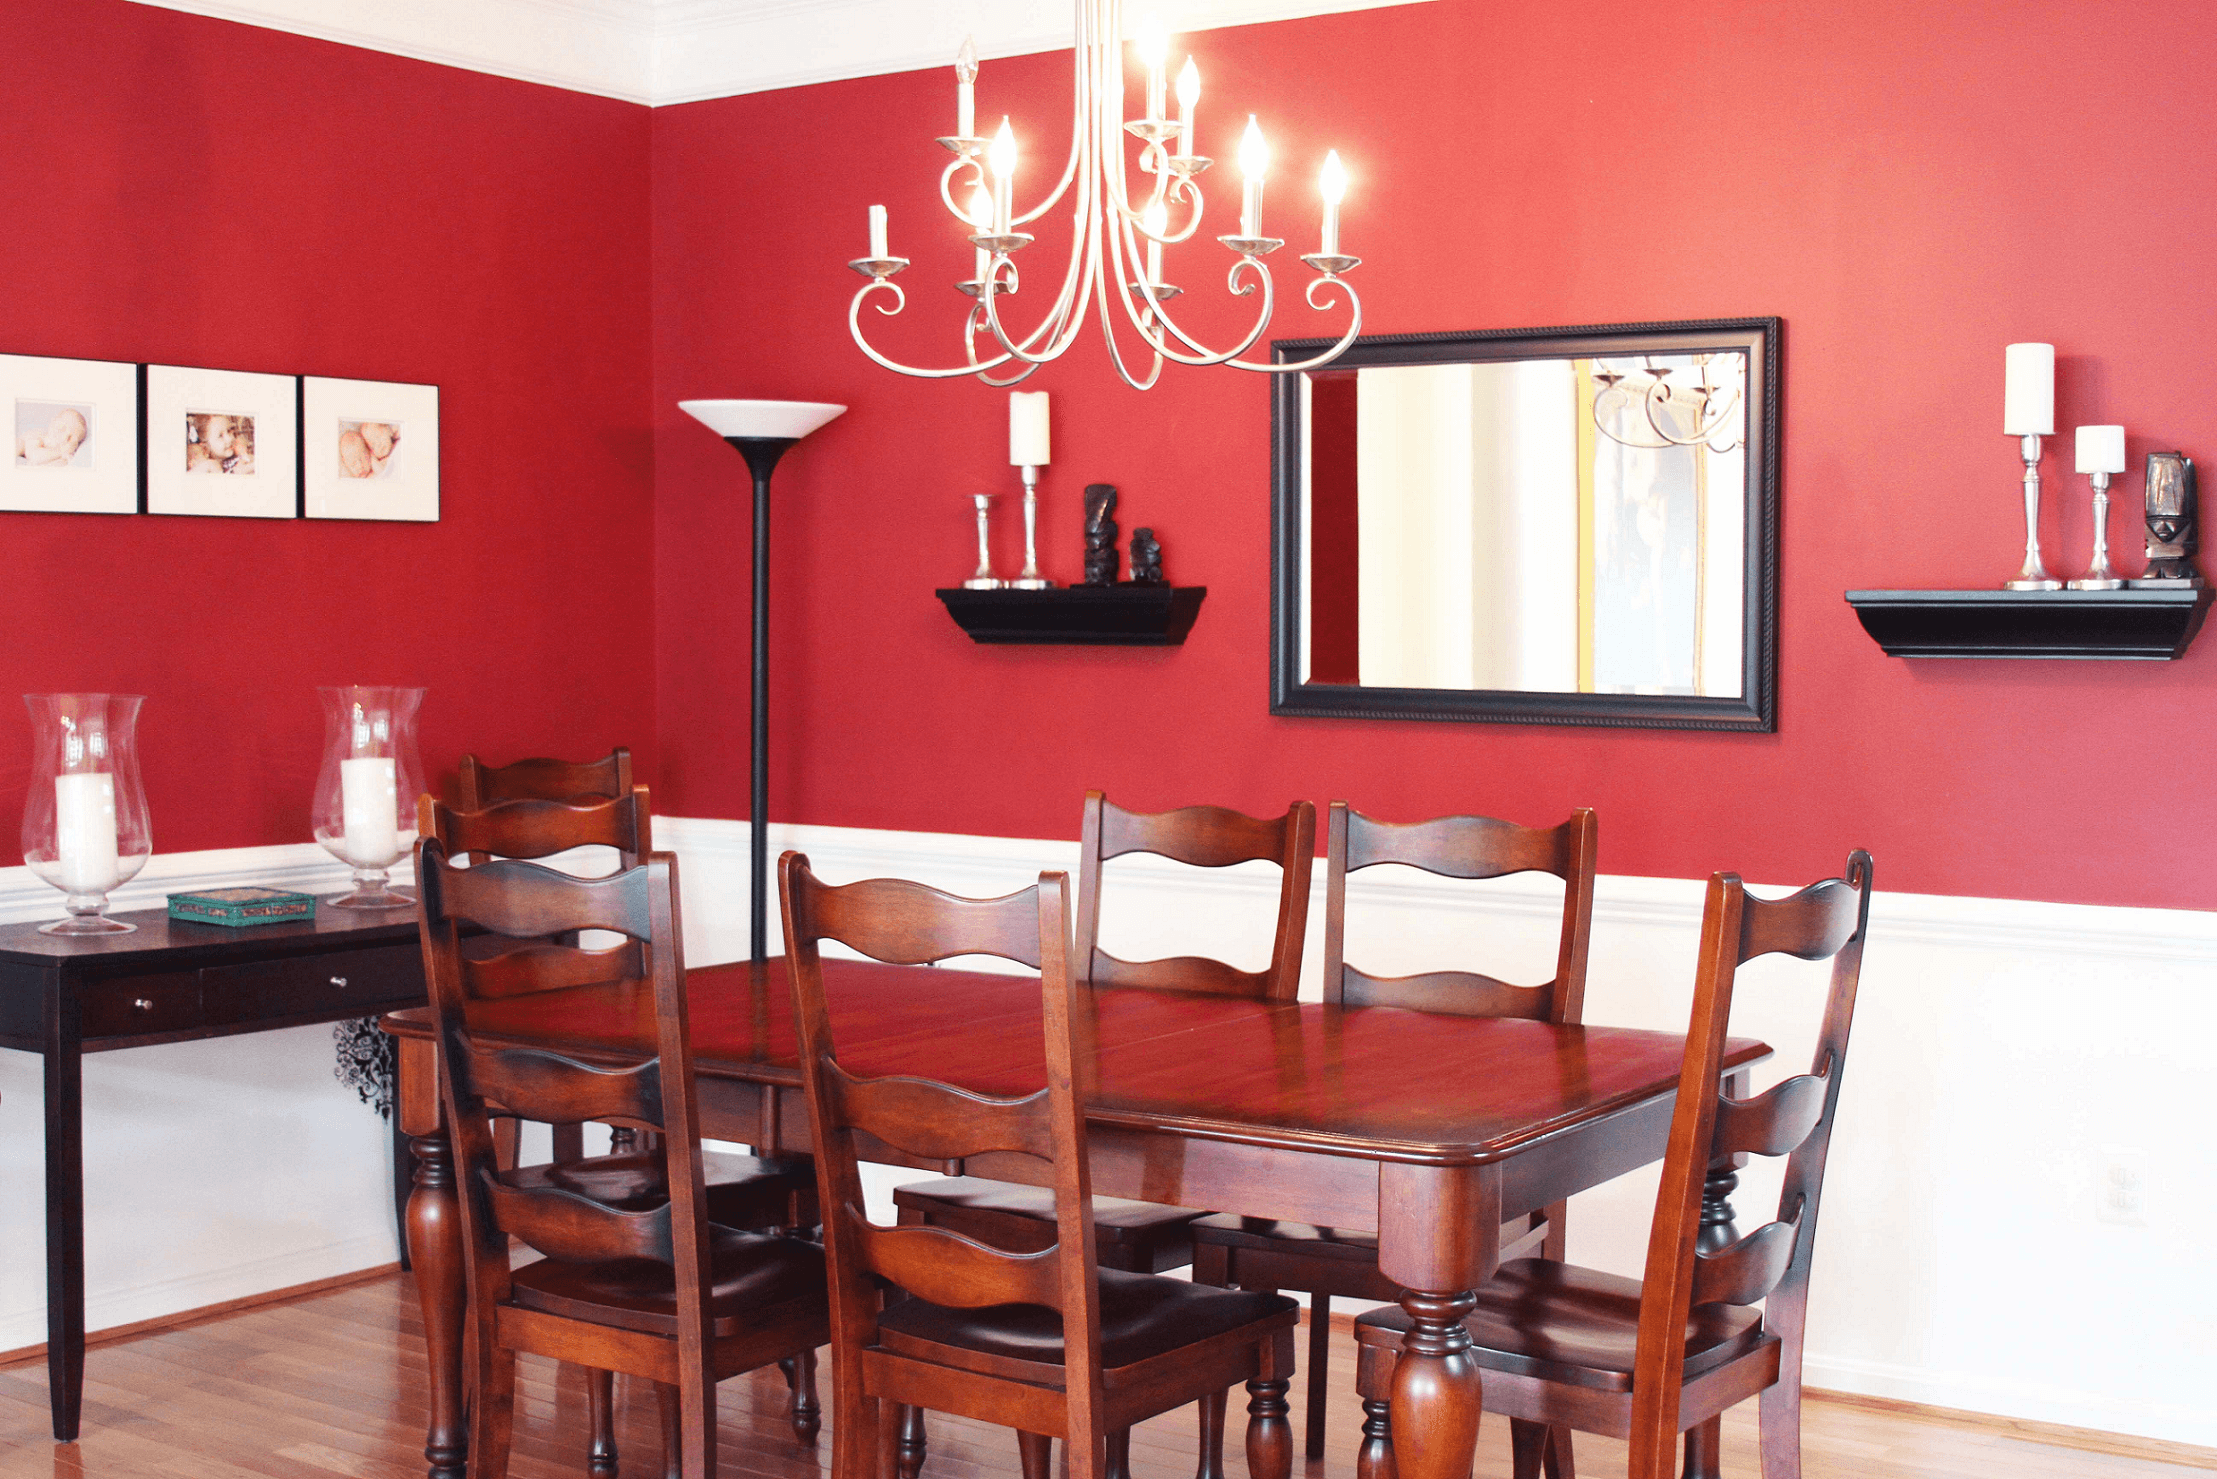 Elegant dining room wall decor